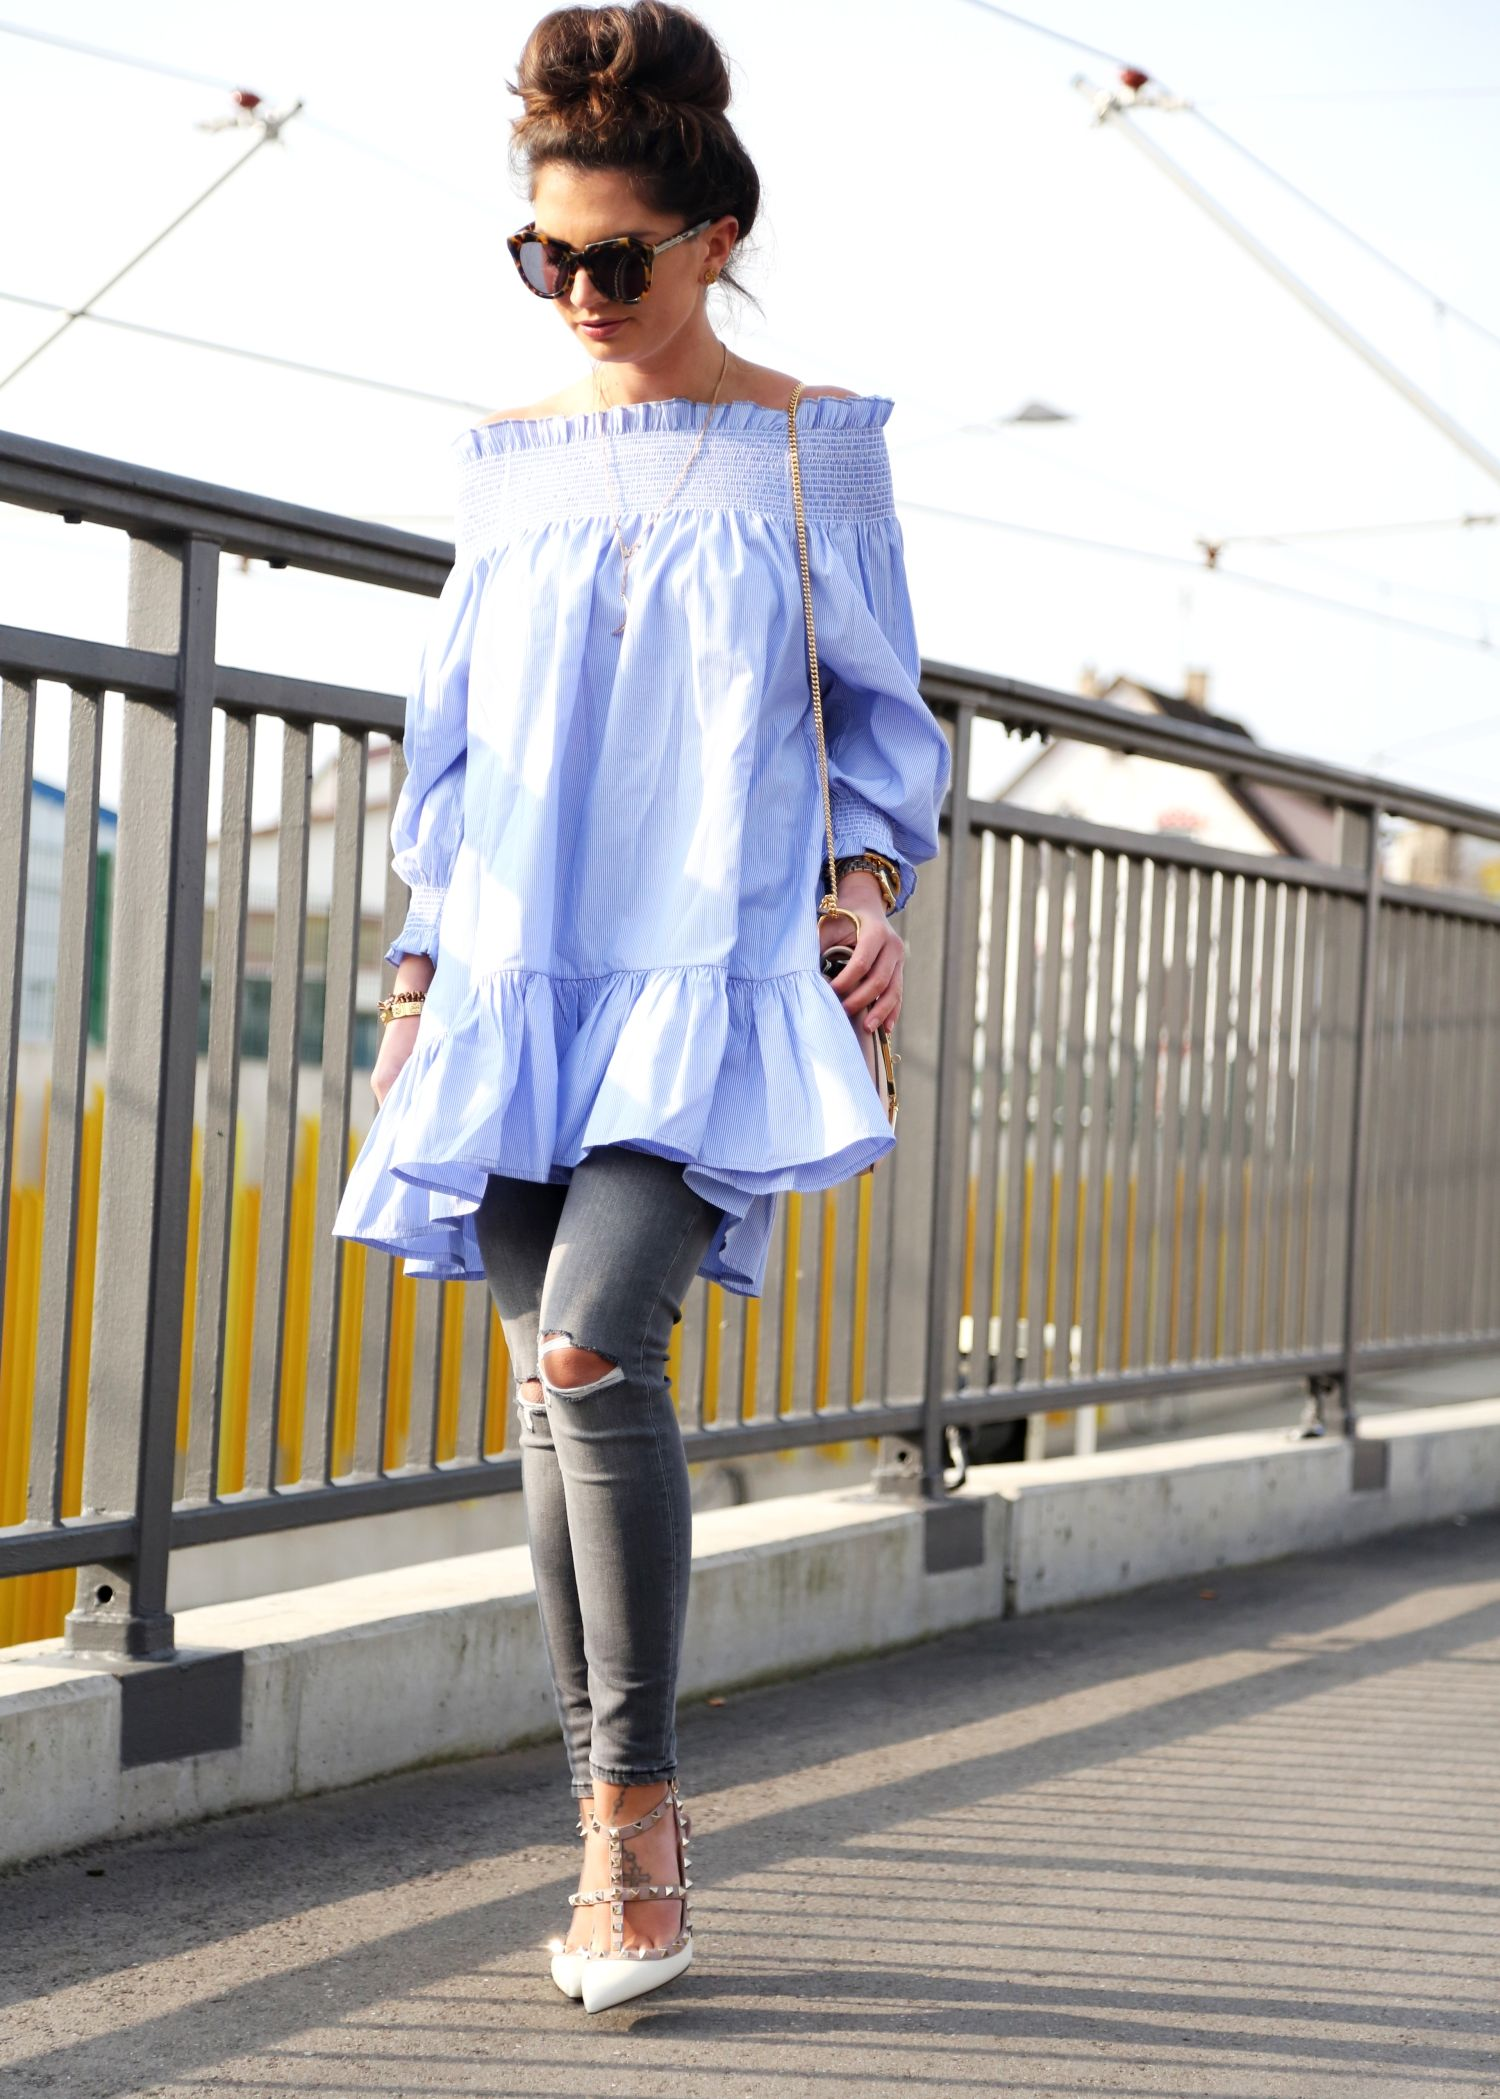 da2ff48ac6 9 Ways to Dress Up Your Jeans - Glamour